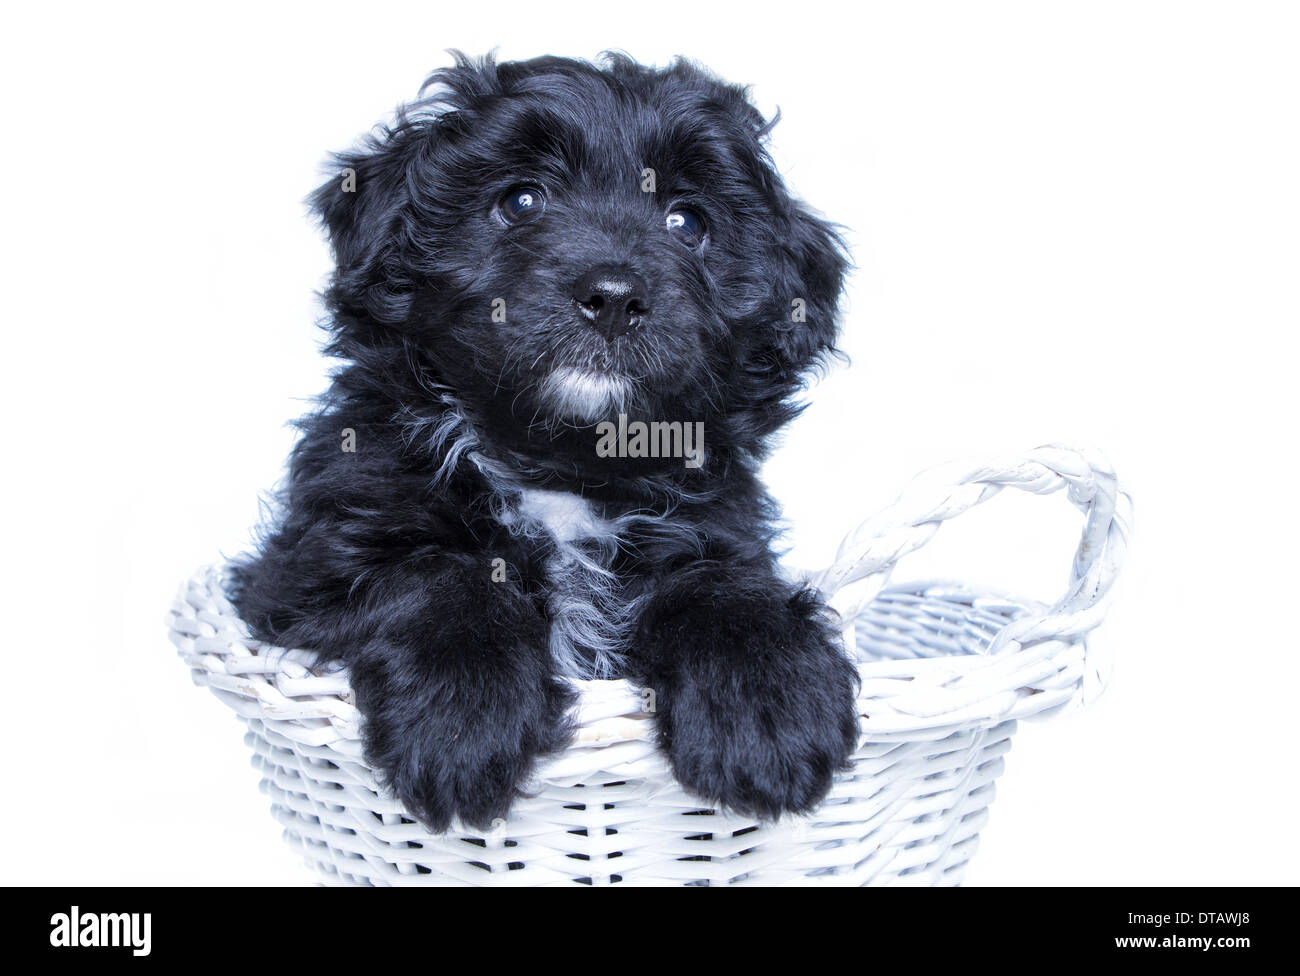 Black Aussie Doodle Puppy Sitting In Basket With Paws Up On